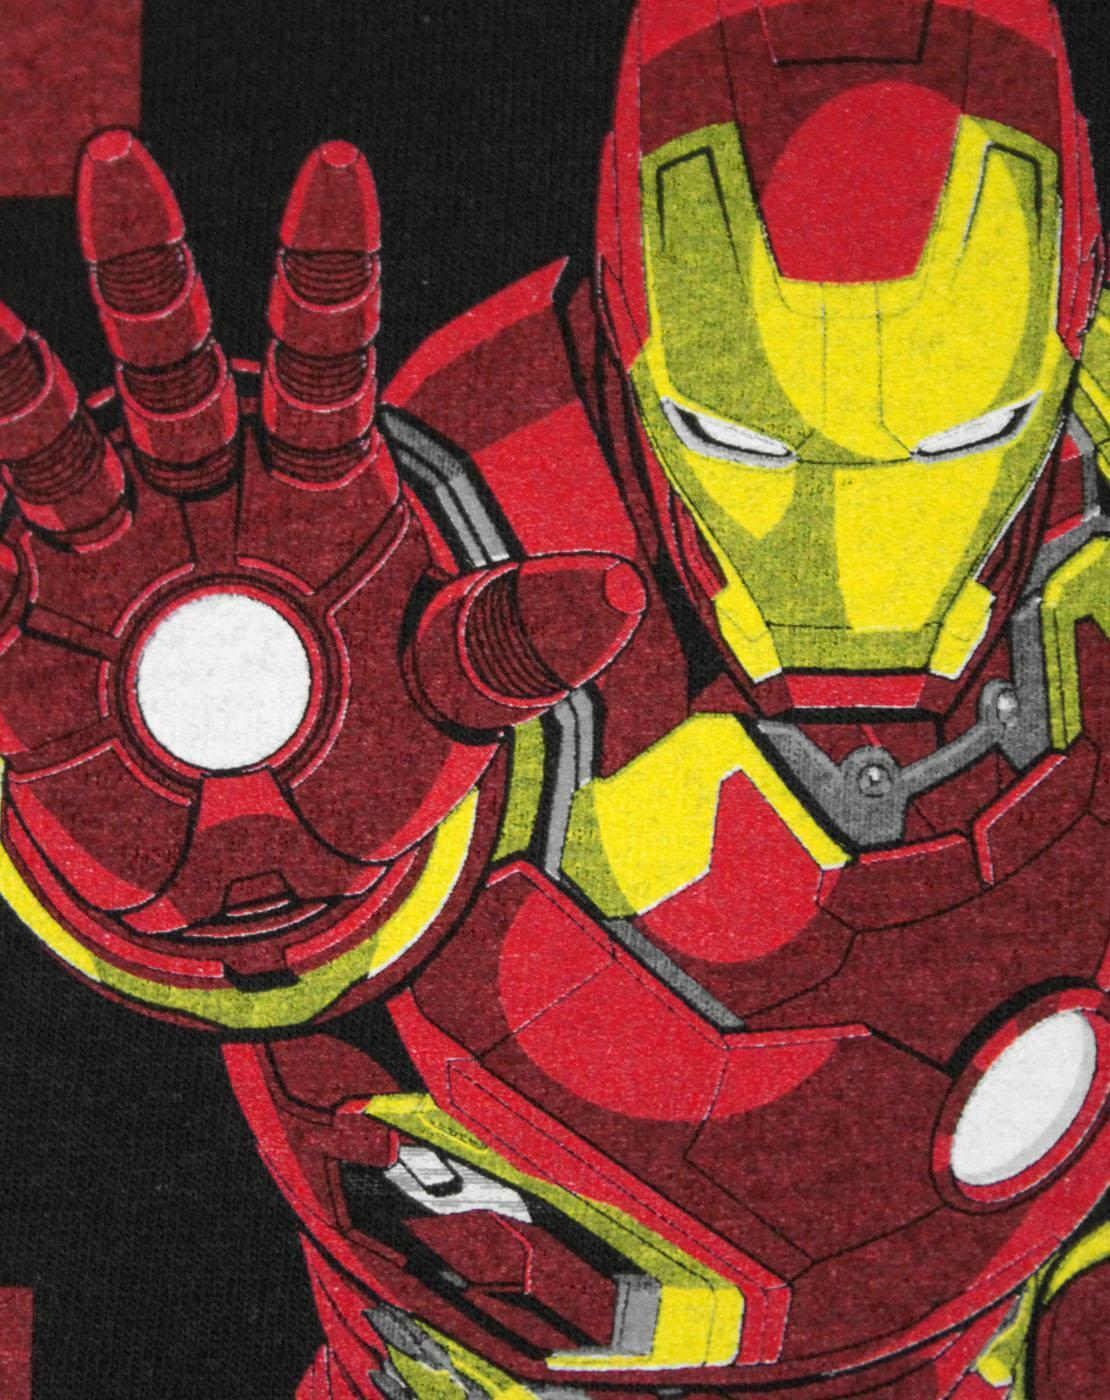 Marvel-Avengers-Iron-Man-Boy-039-s-T-Shirt thumbnail 7